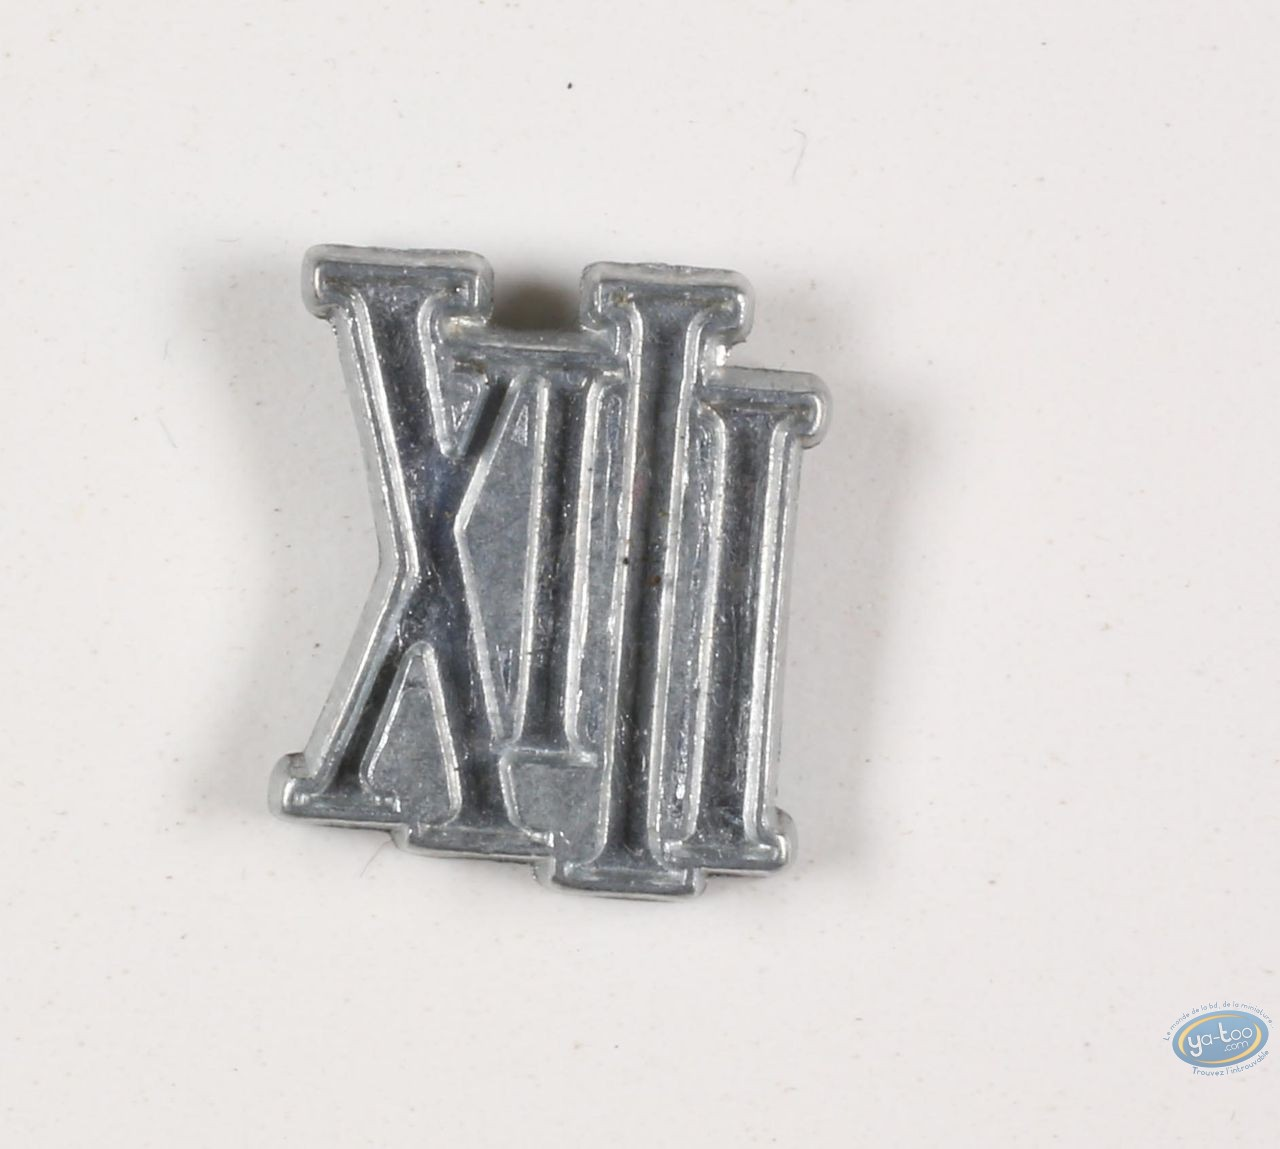 Pin's, XIII : XIII version brut